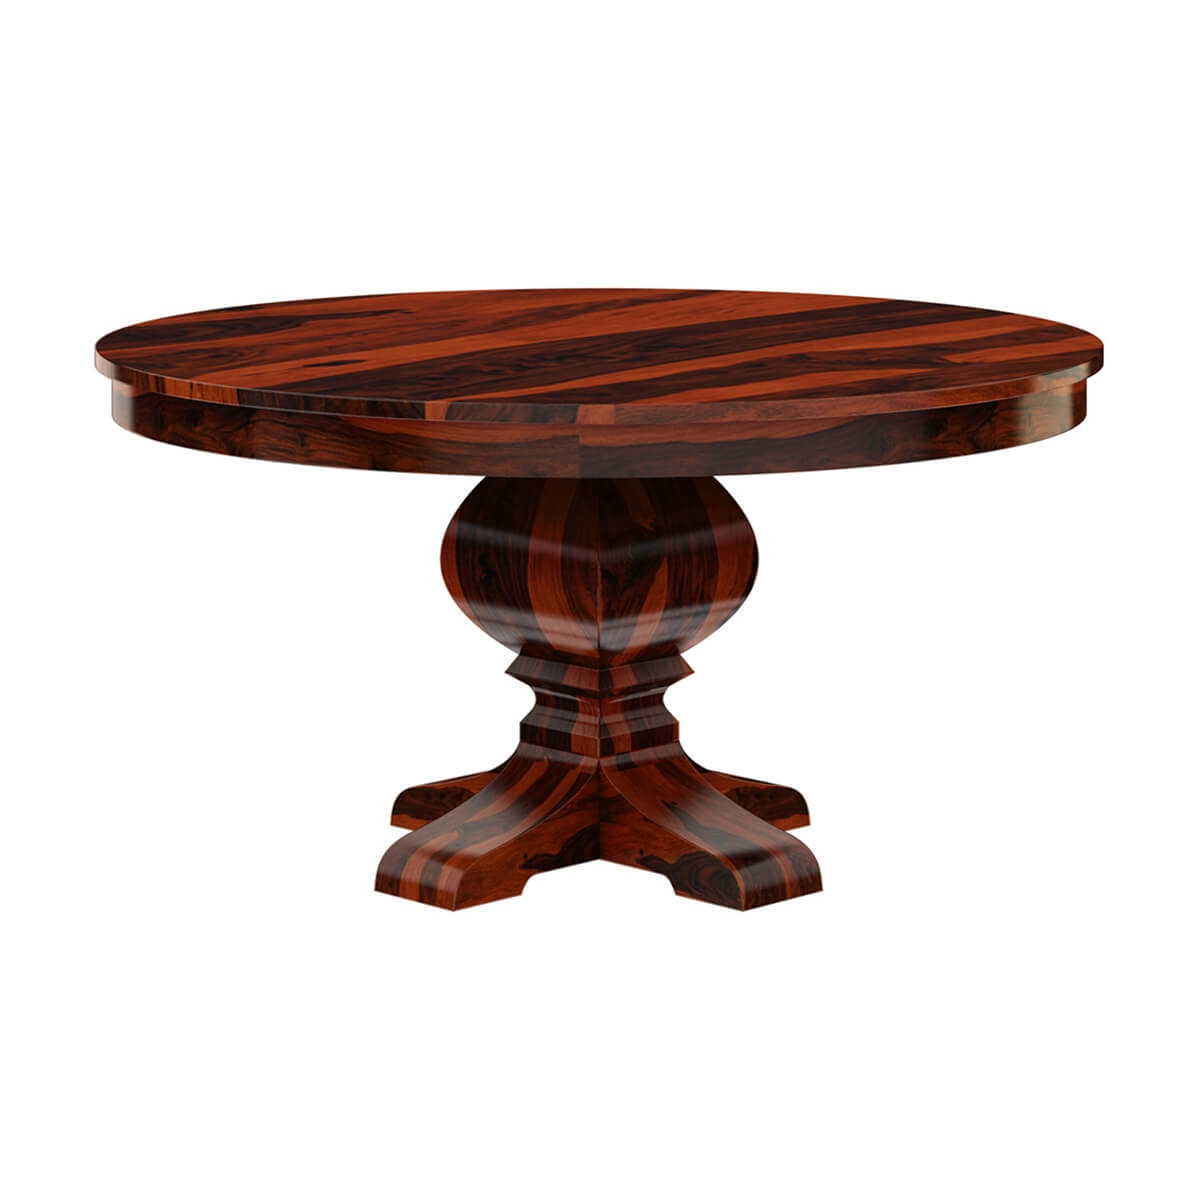 Missouri 60 solid wood round pedestal dining table for Solid wood dining table